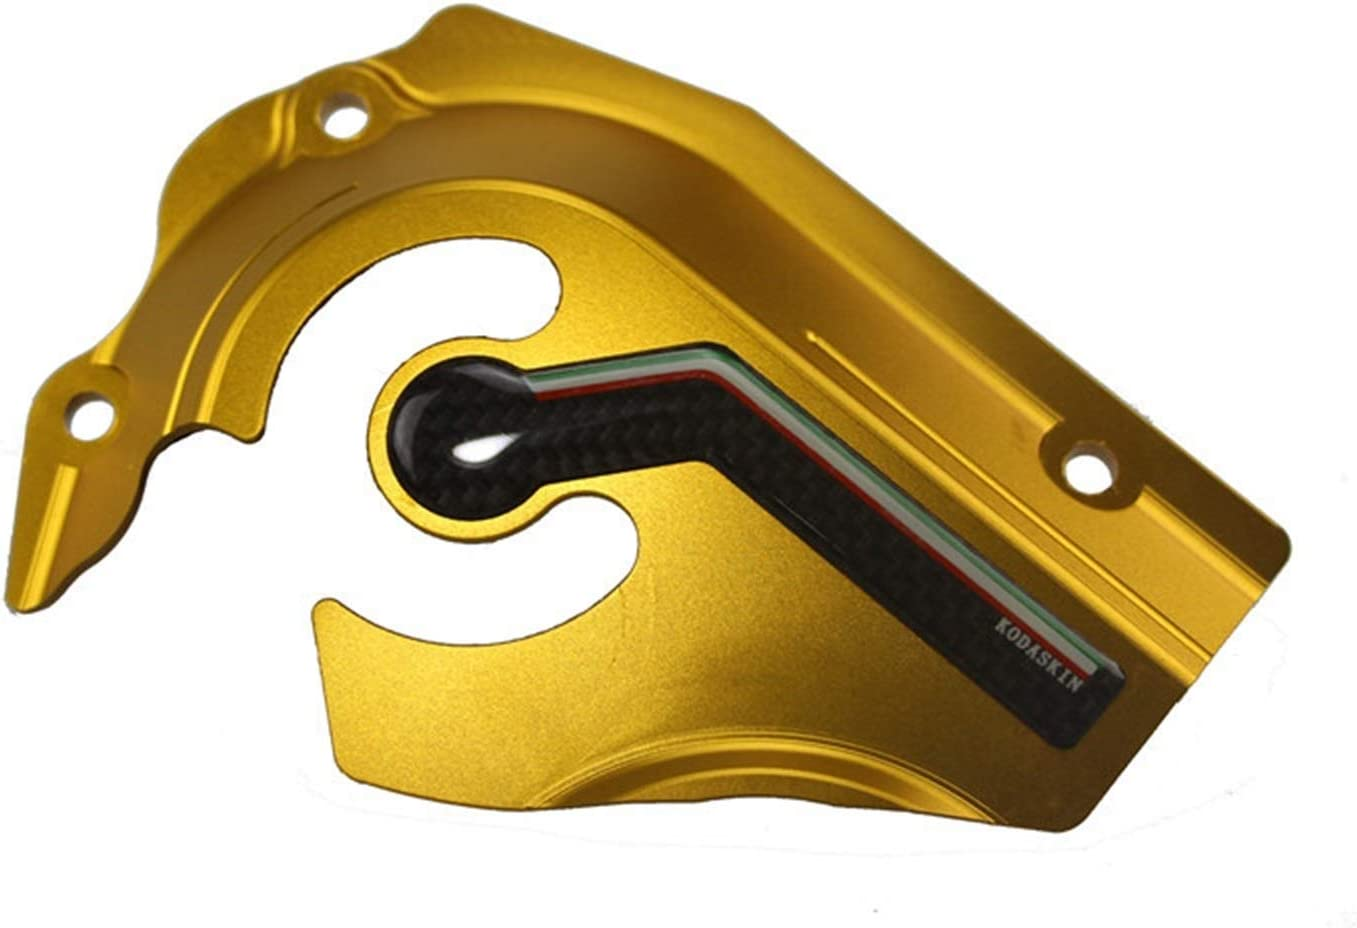 TGGFA Billet Aluminum Front Sprocket 40% OFF Cheap Beauty products Sale for Cover Chain Hype Ducati